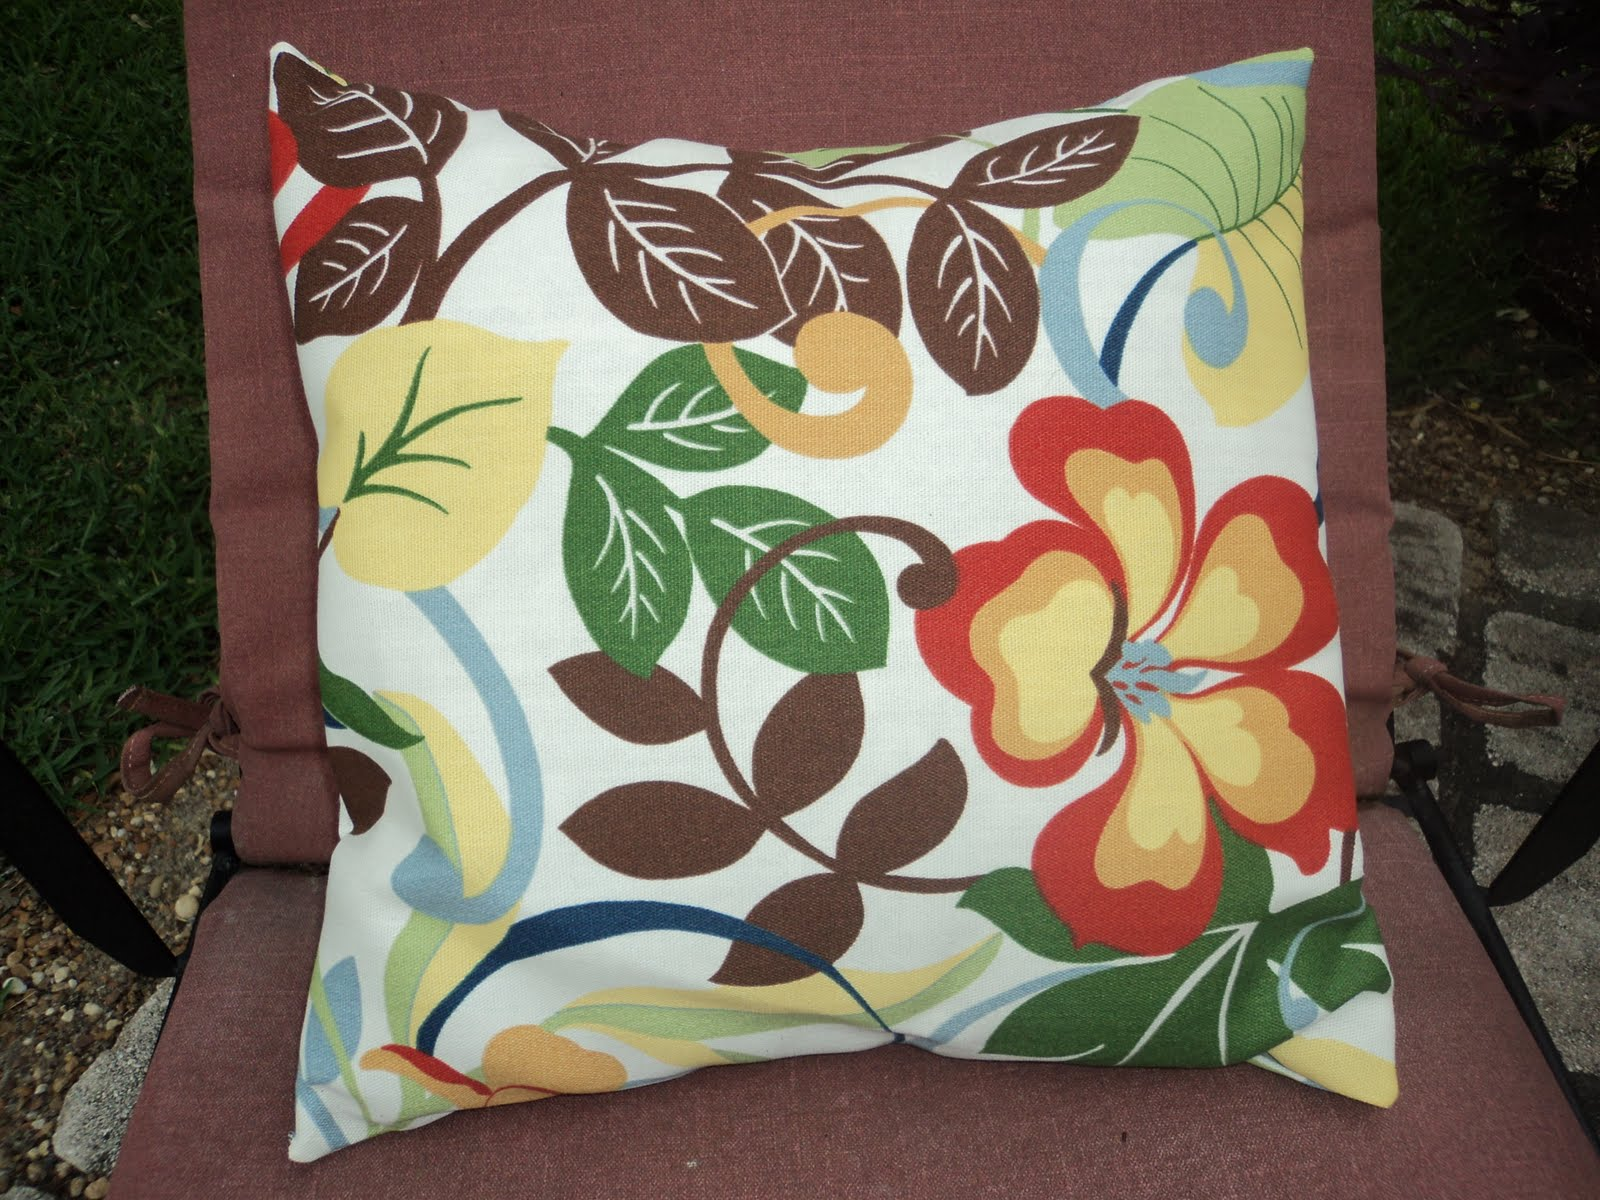 Yay Home!: Outdoor Pillow Cover